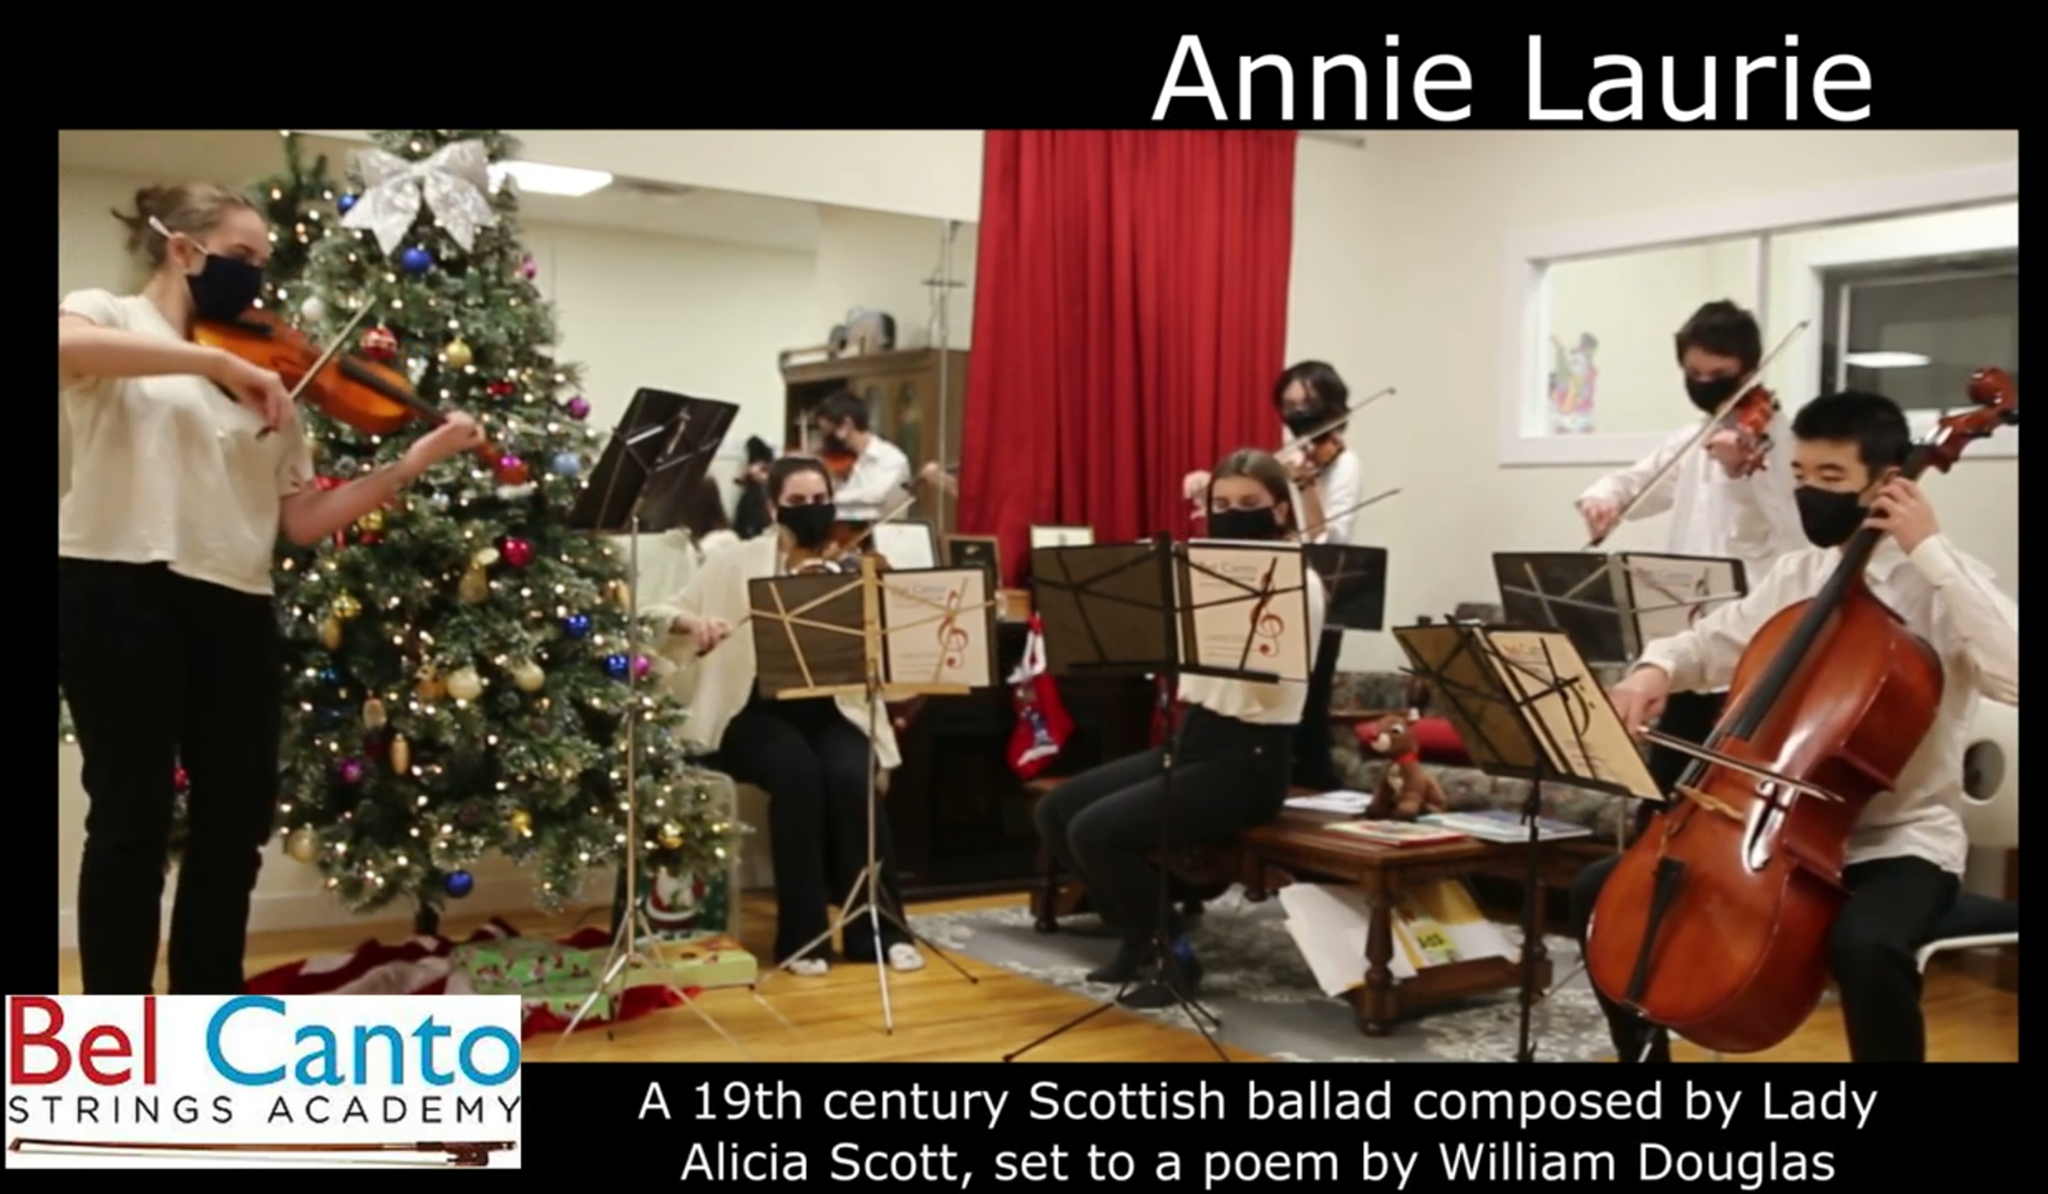 Annie Laurie by Chamber Strings